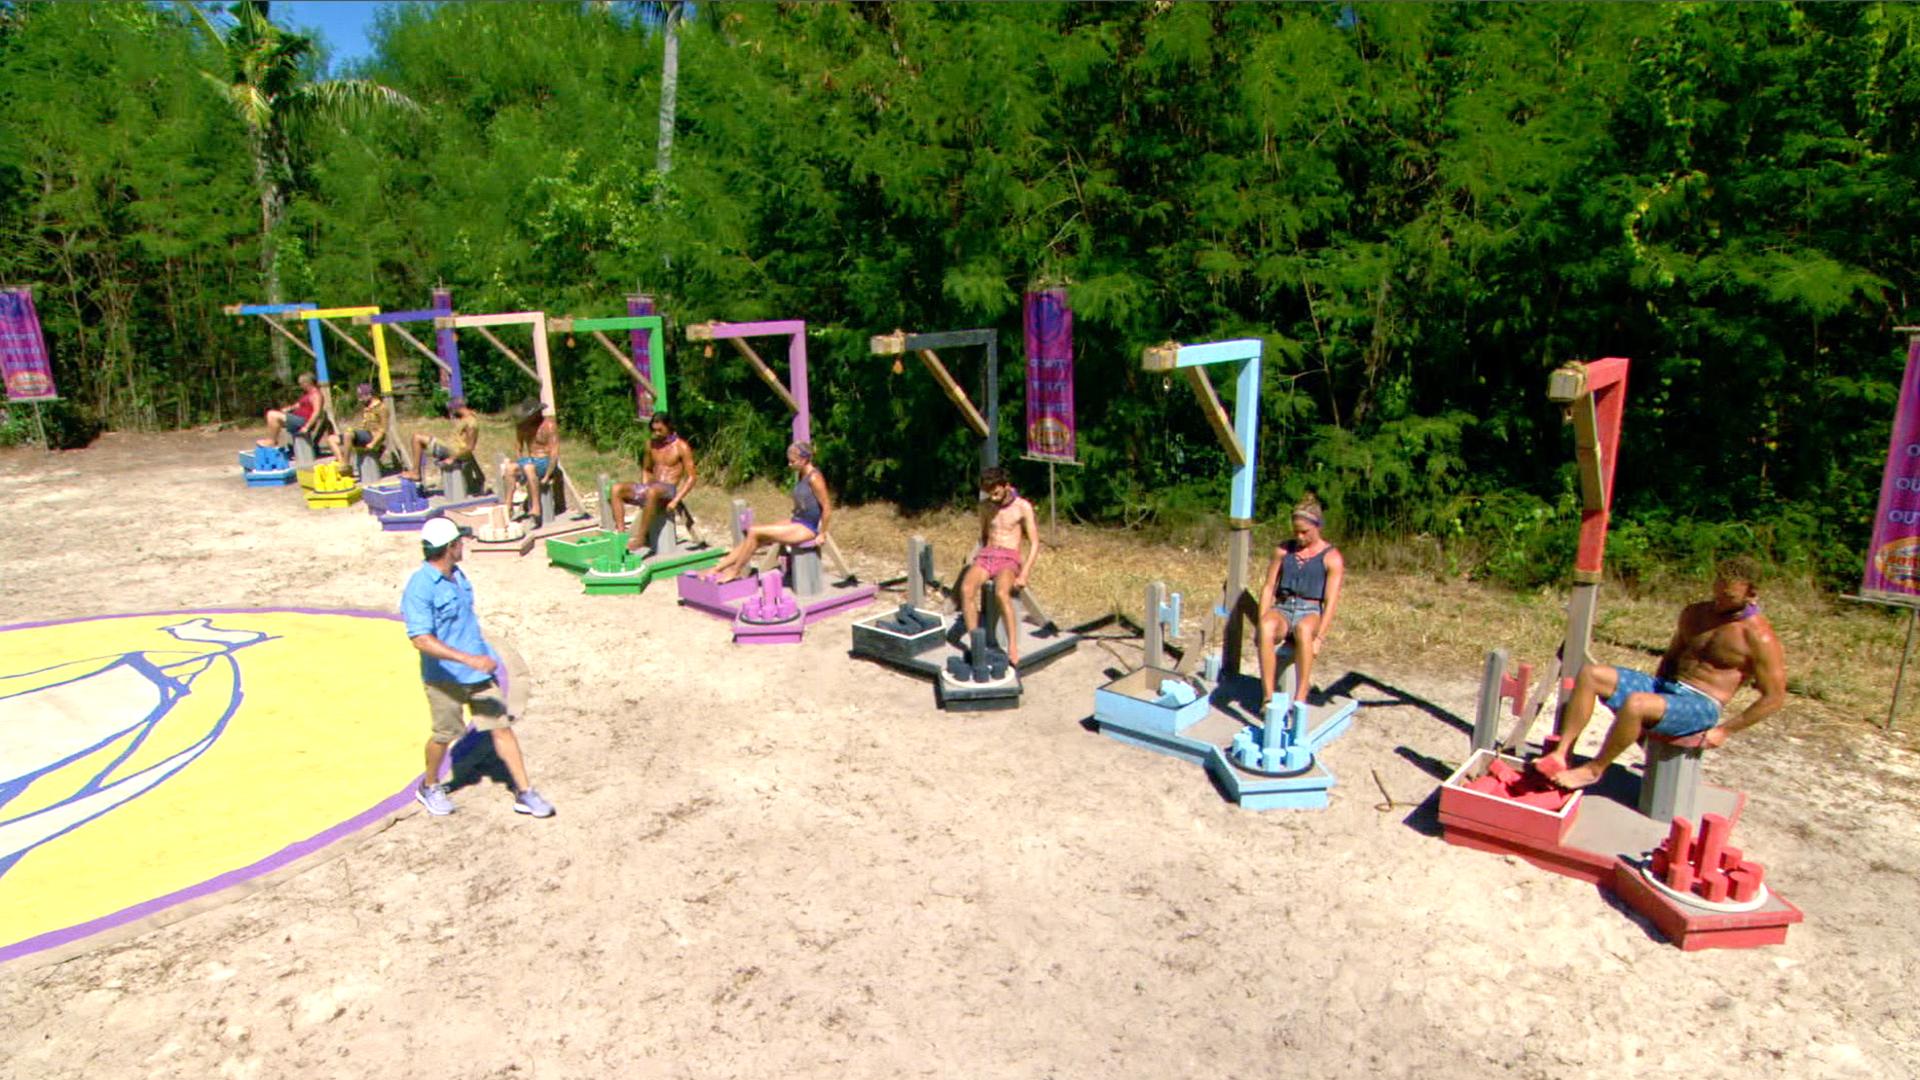 Watch Survivor Season 35 Episode 10, 11: Buy One, Get One Free - Full show  on CBS All Access